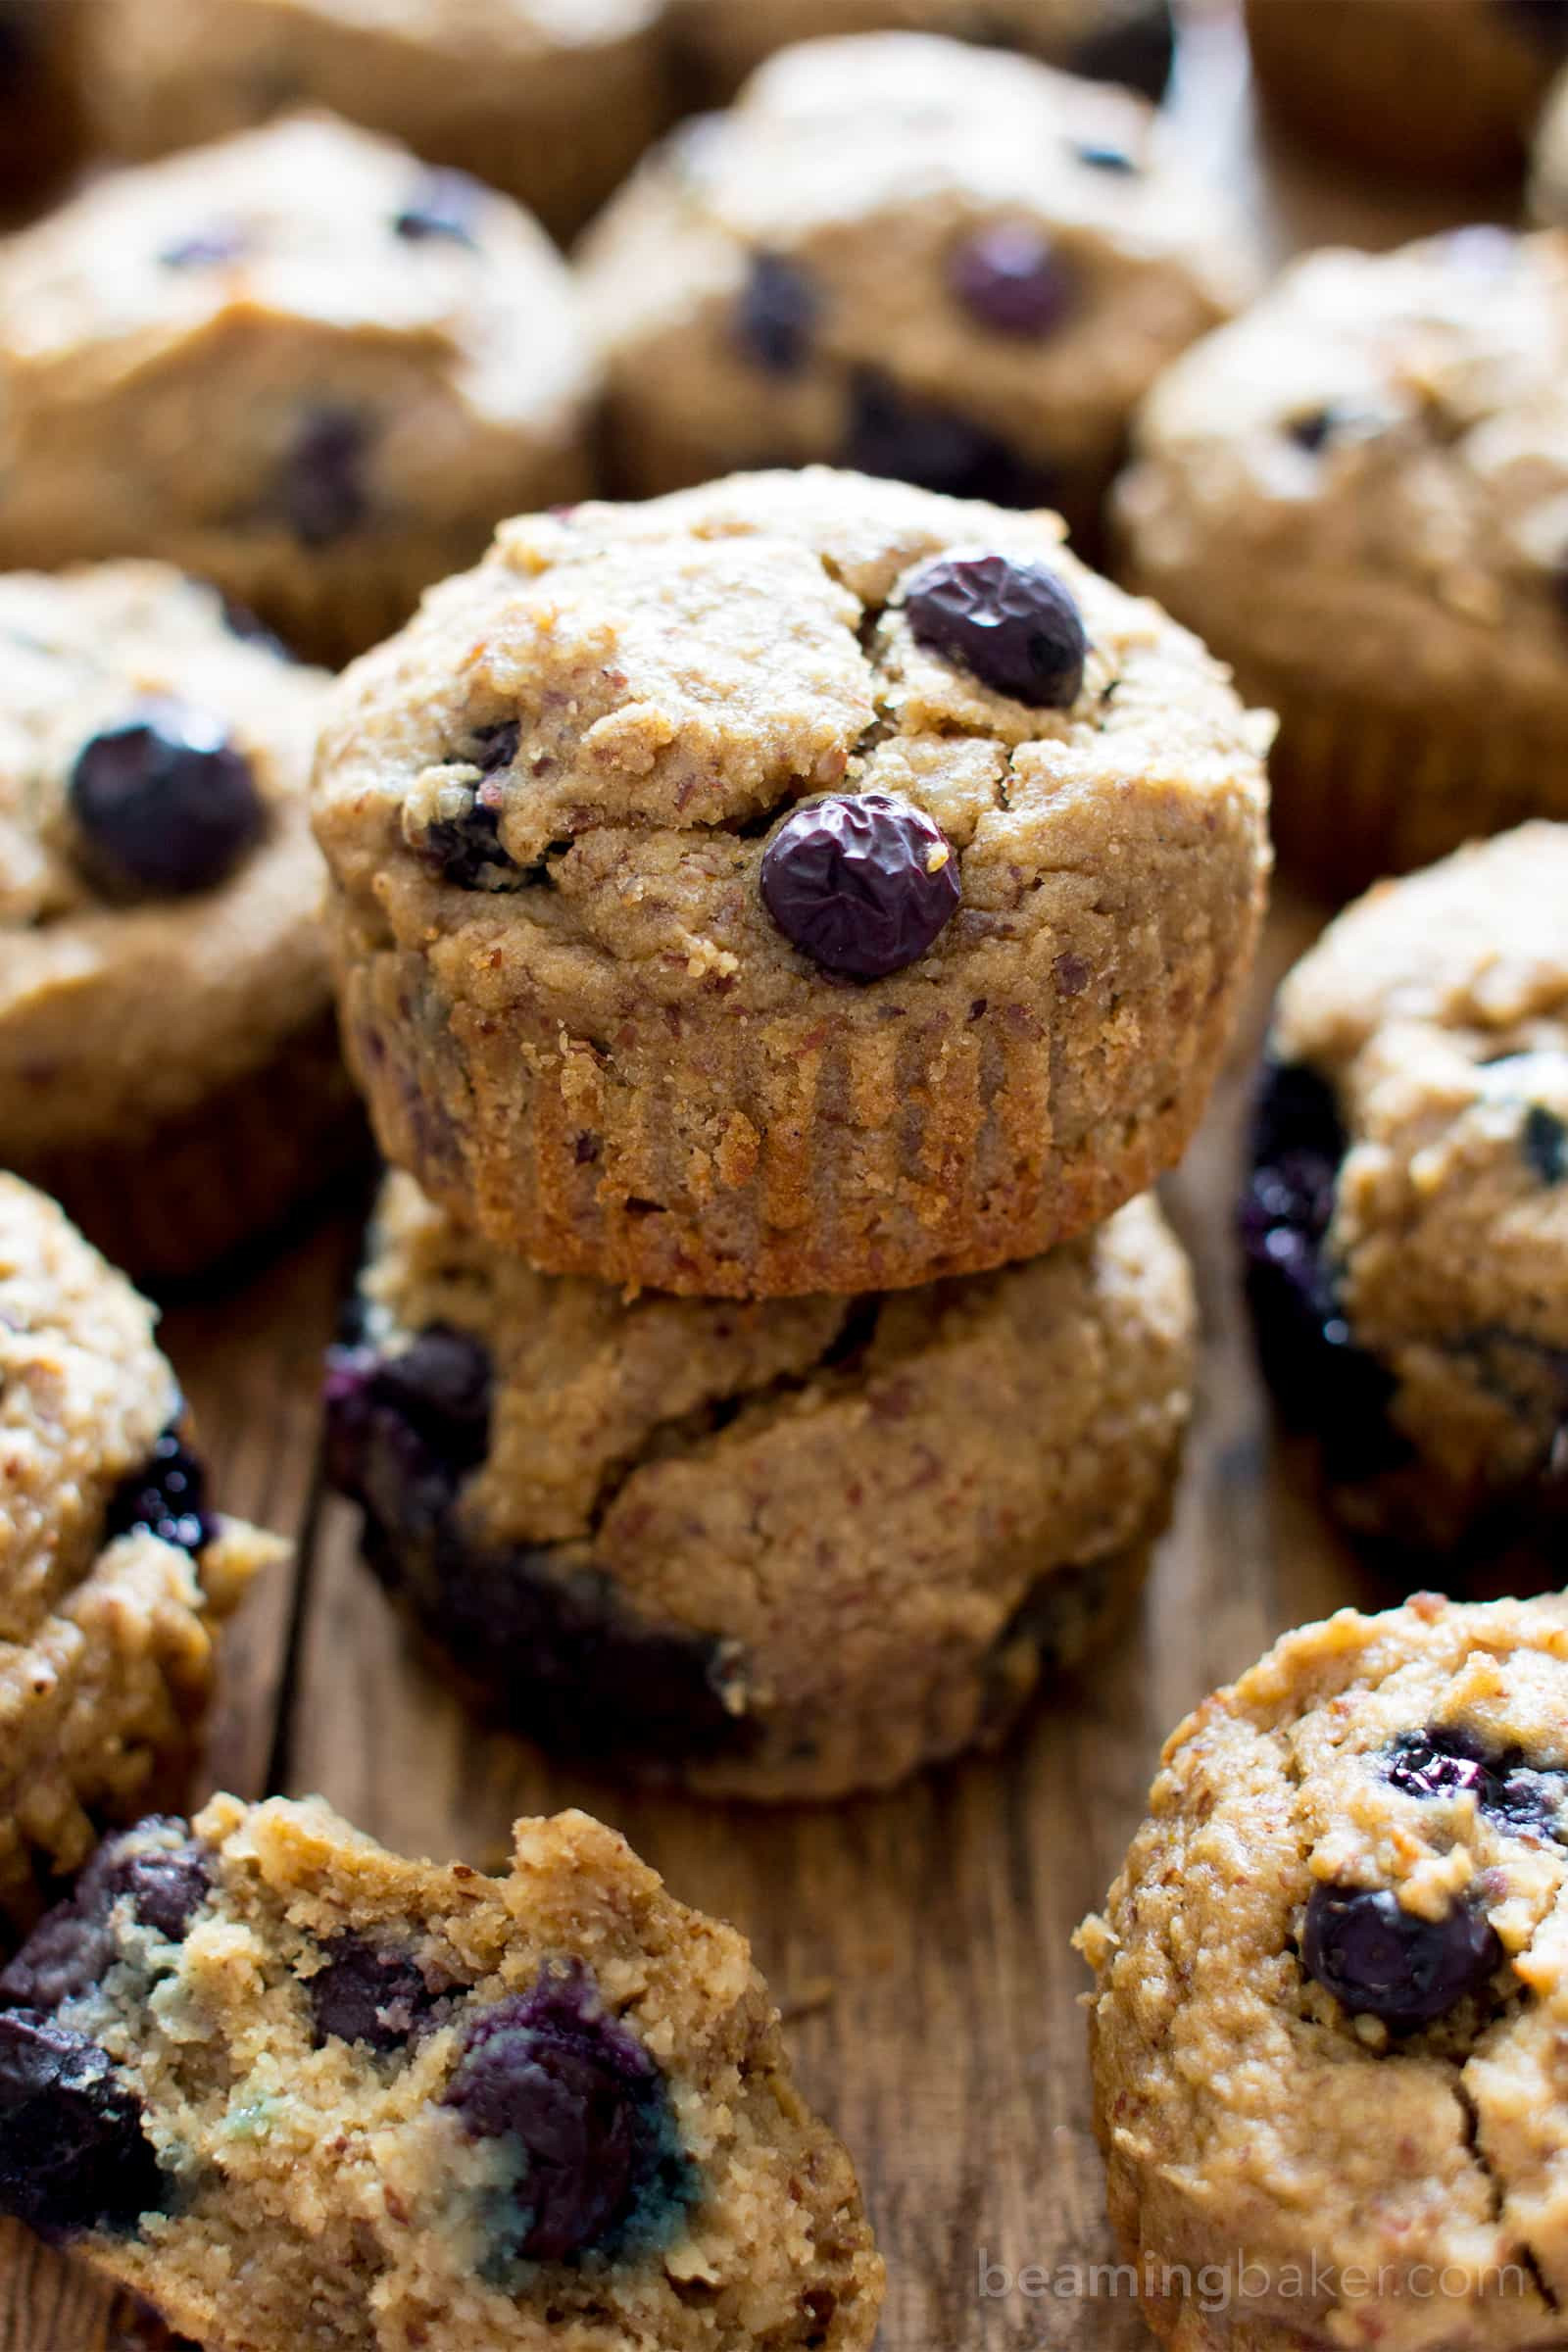 Healthy Blueberry Muffins With Applesauce  Gluten Free Vegan Blueberry Applesauce Muffins V GF DF